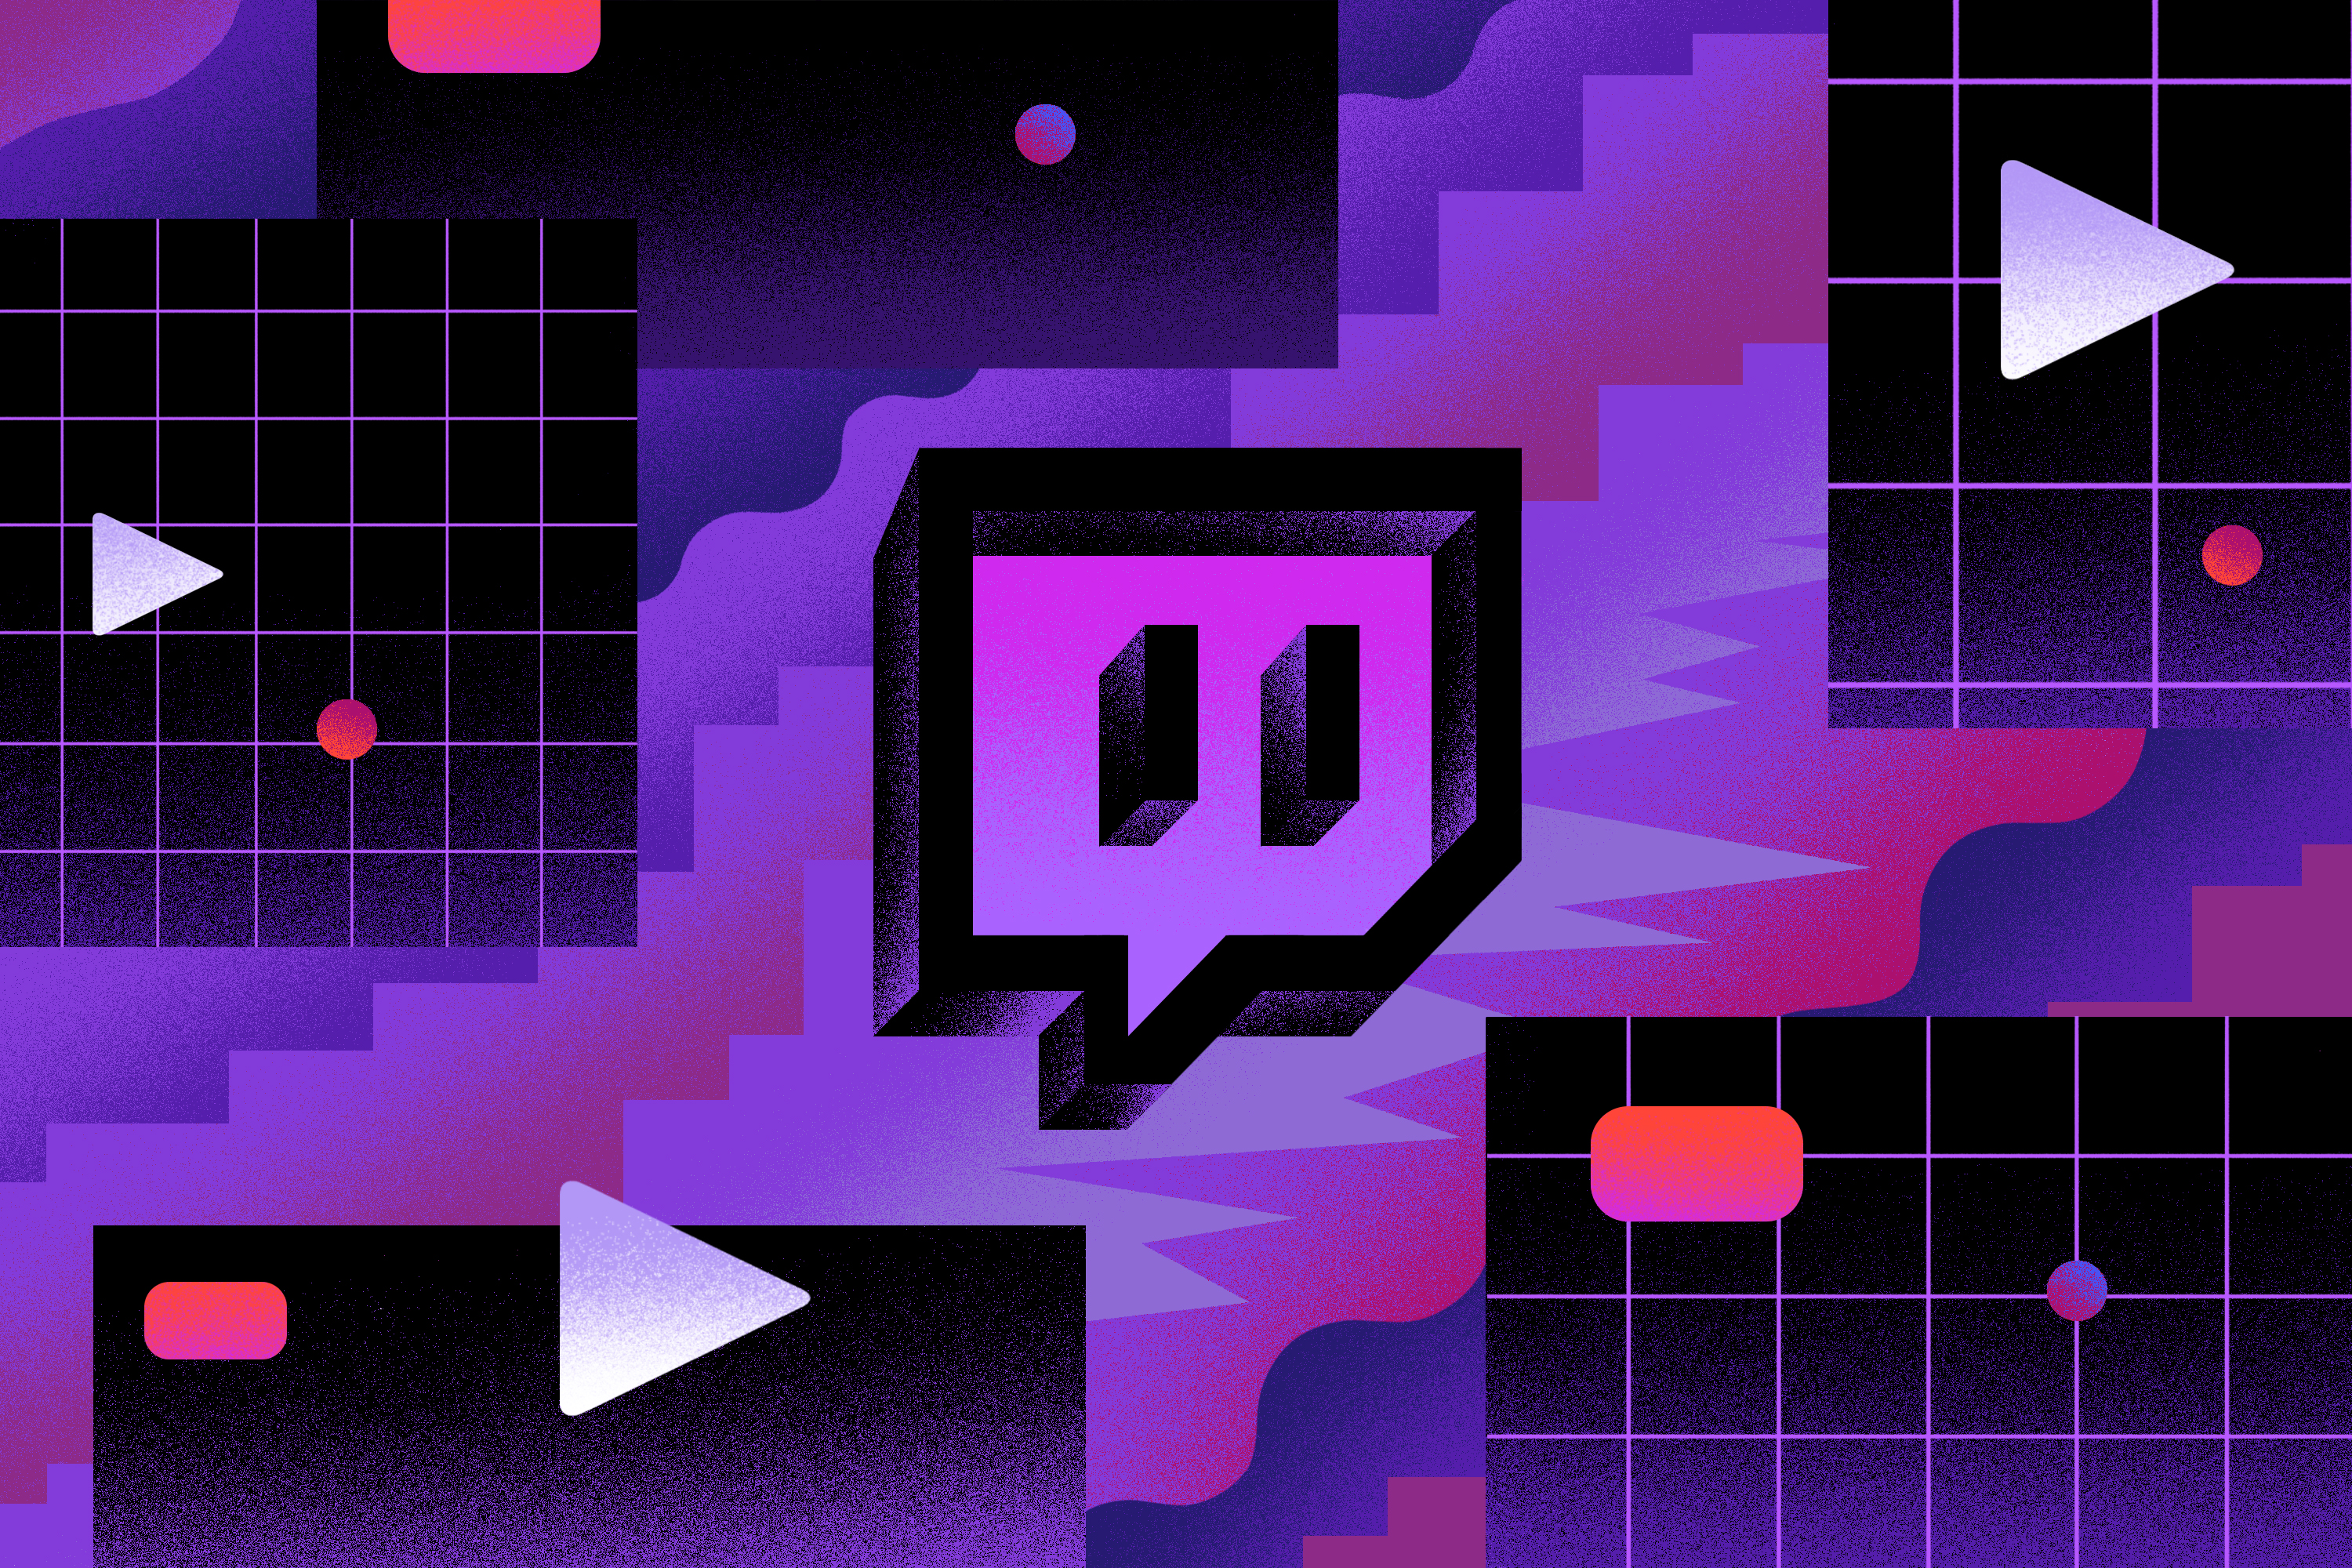 Illustration featuring purple and pink graphic lines and a Twitch logo